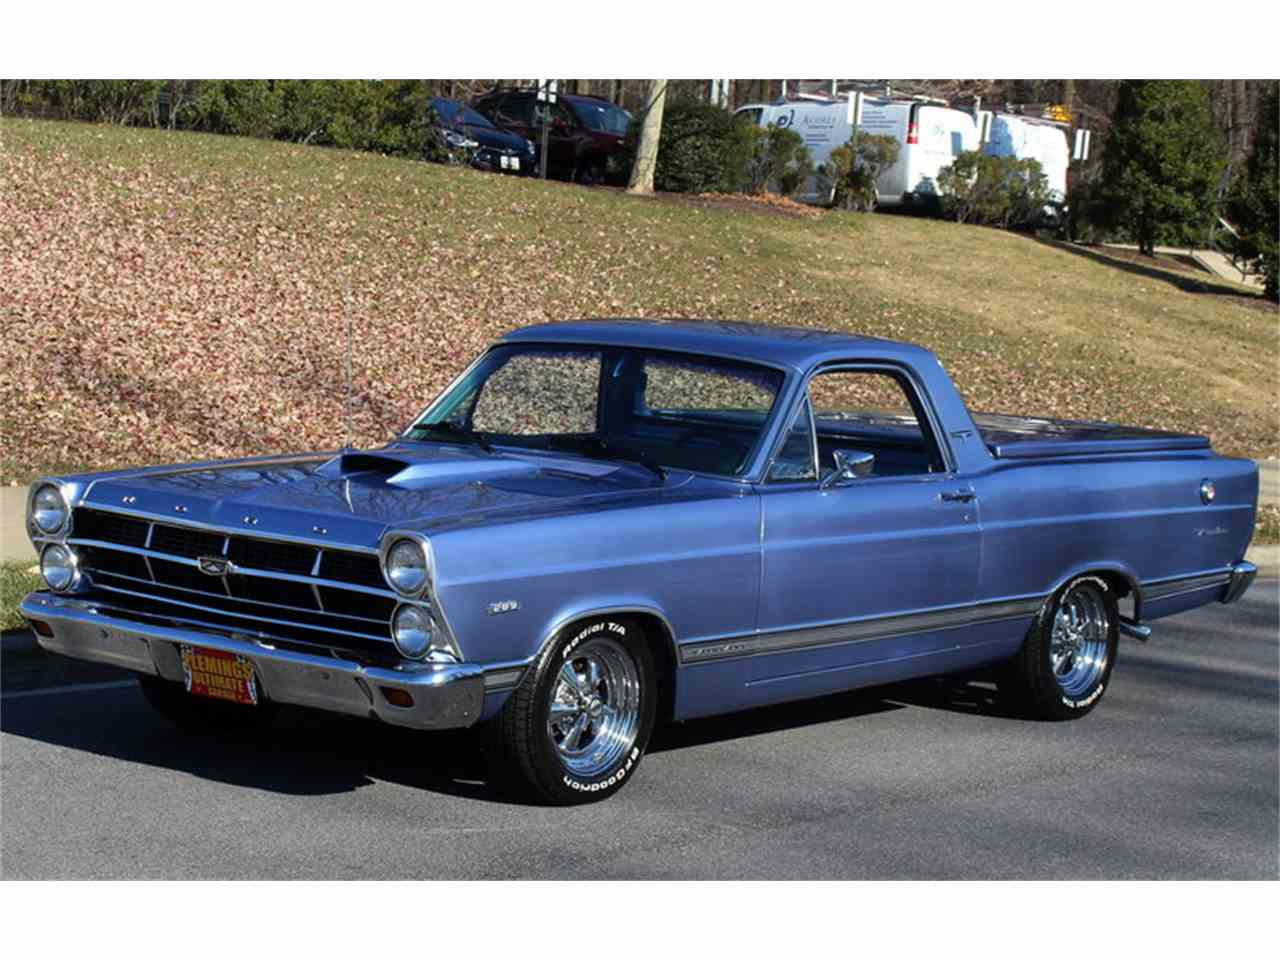 Trucks For 5000 And Under >> 1967 Ford Ranchero for Sale | ClassicCars.com | CC-1044789